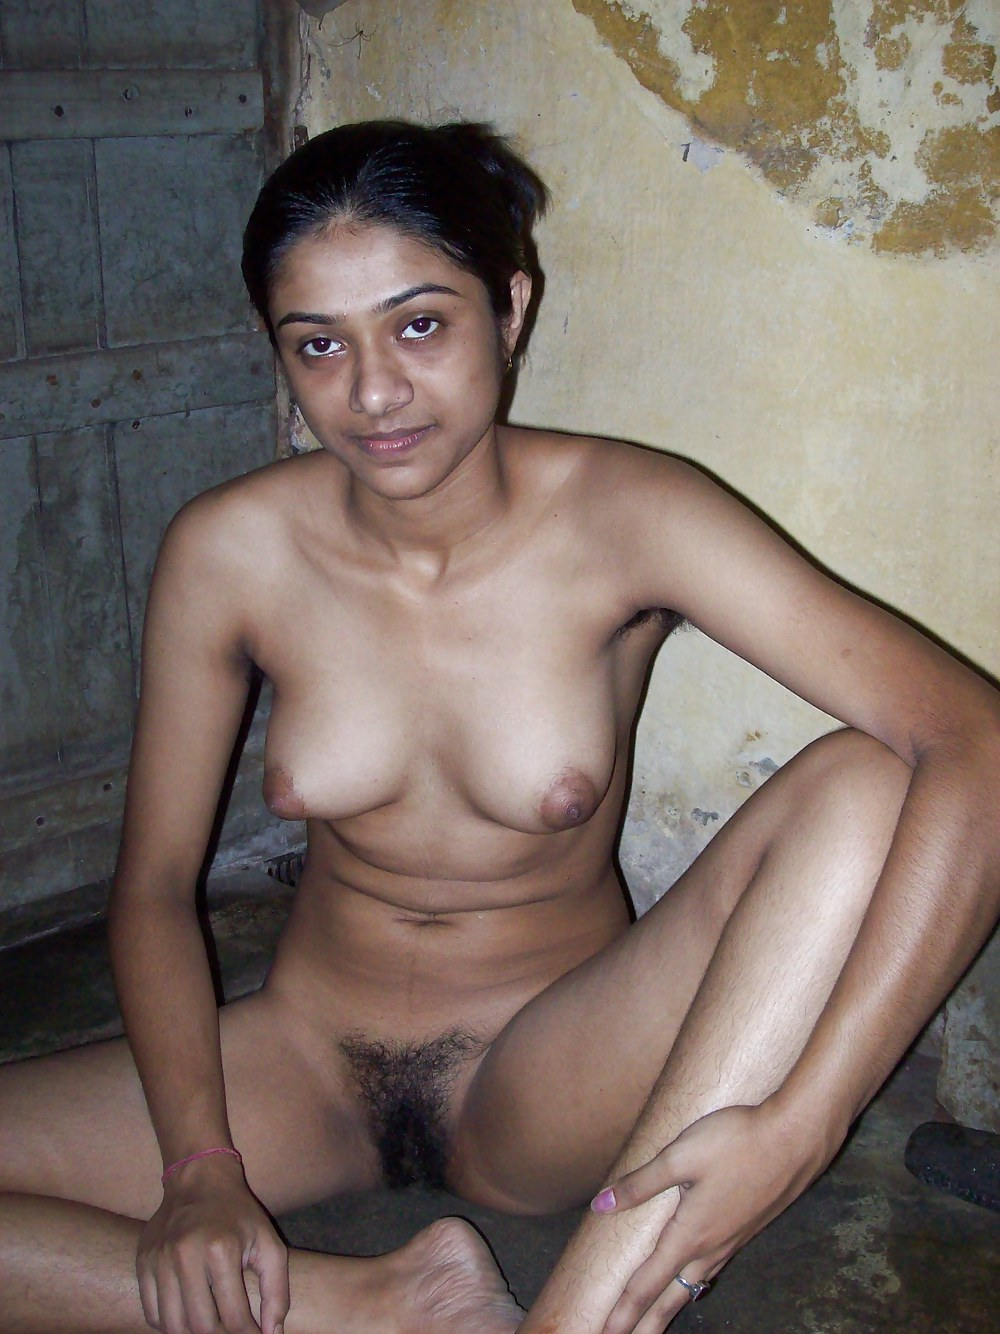 Indian porn movies screen shots images xxx scenes